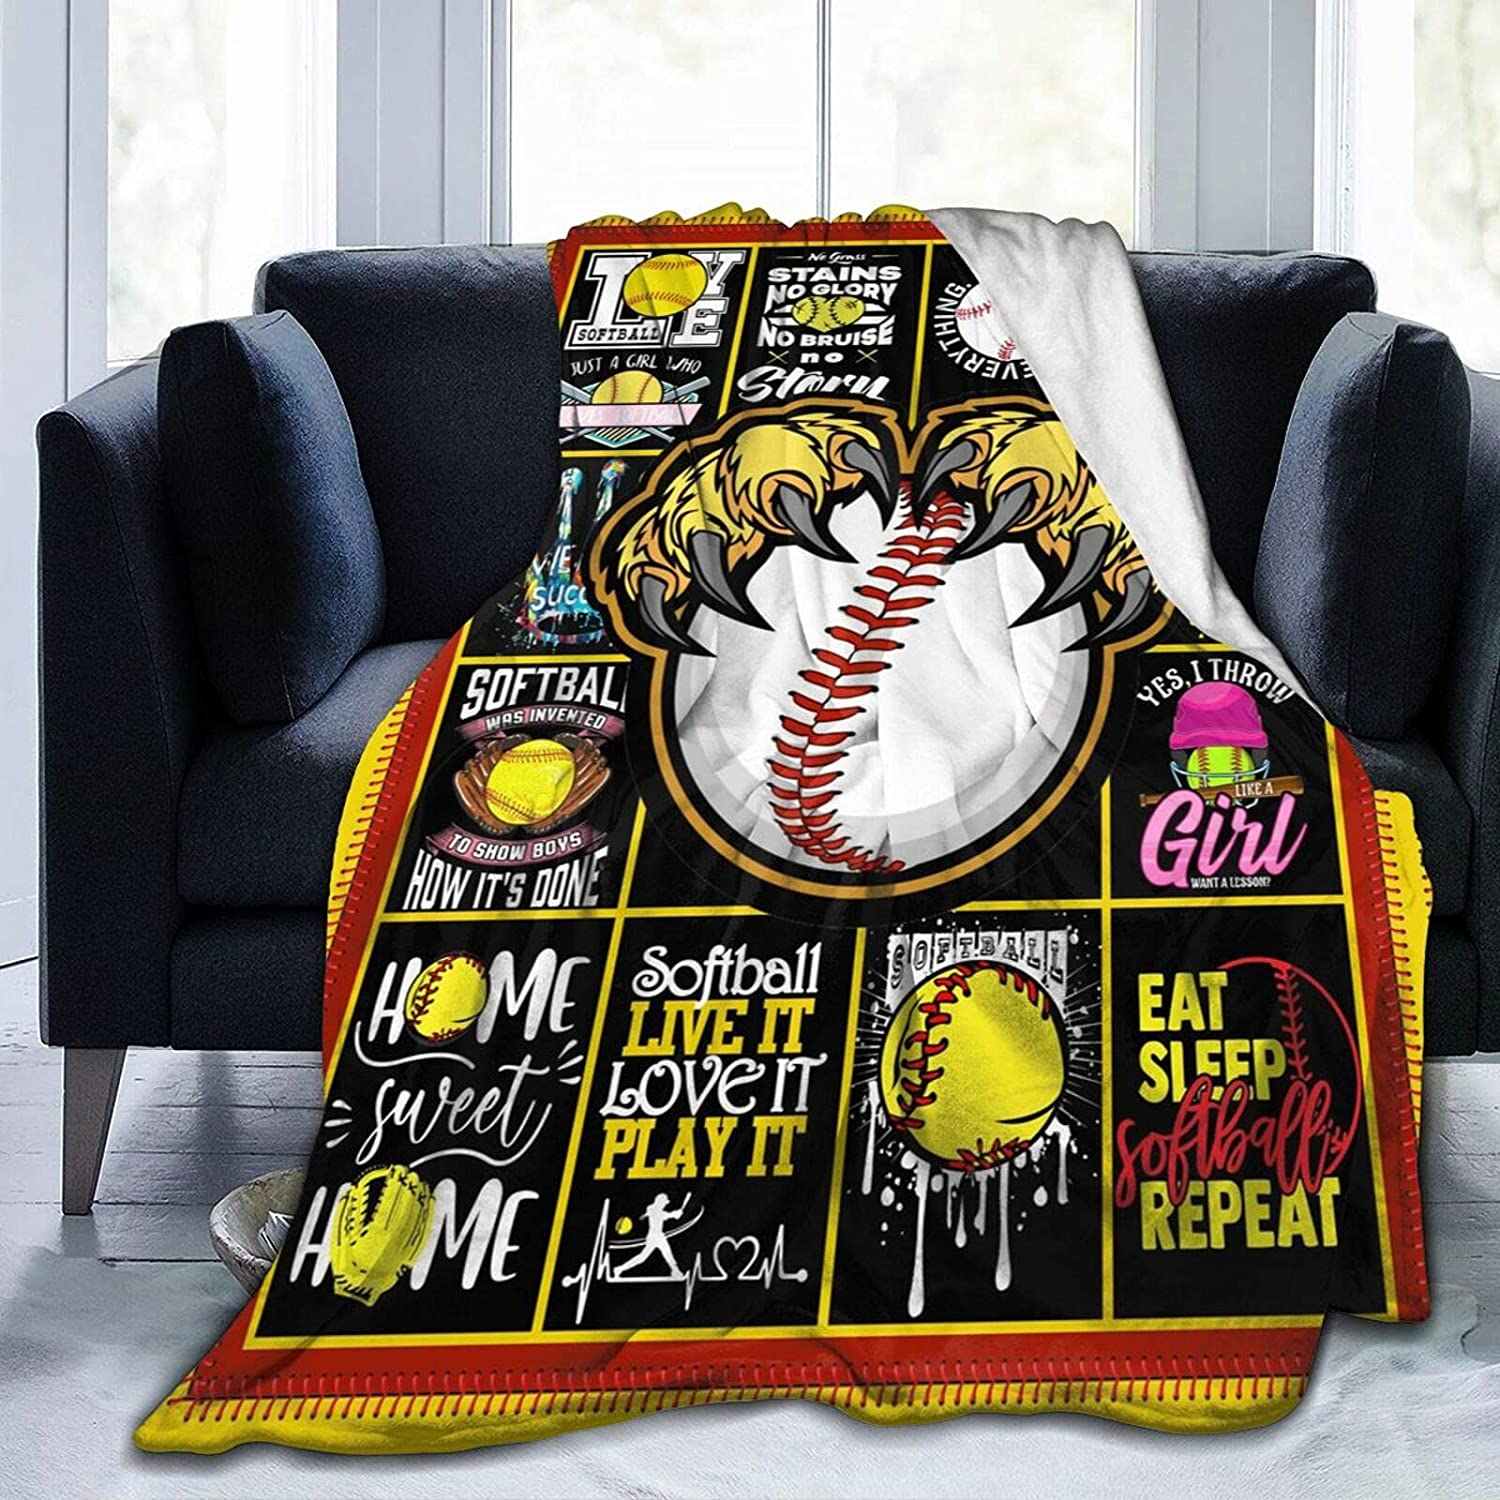 Socira Flannel Throw Blanket Softball Animer and price revision in Blac New Orleans Mall Yellow Lover Print